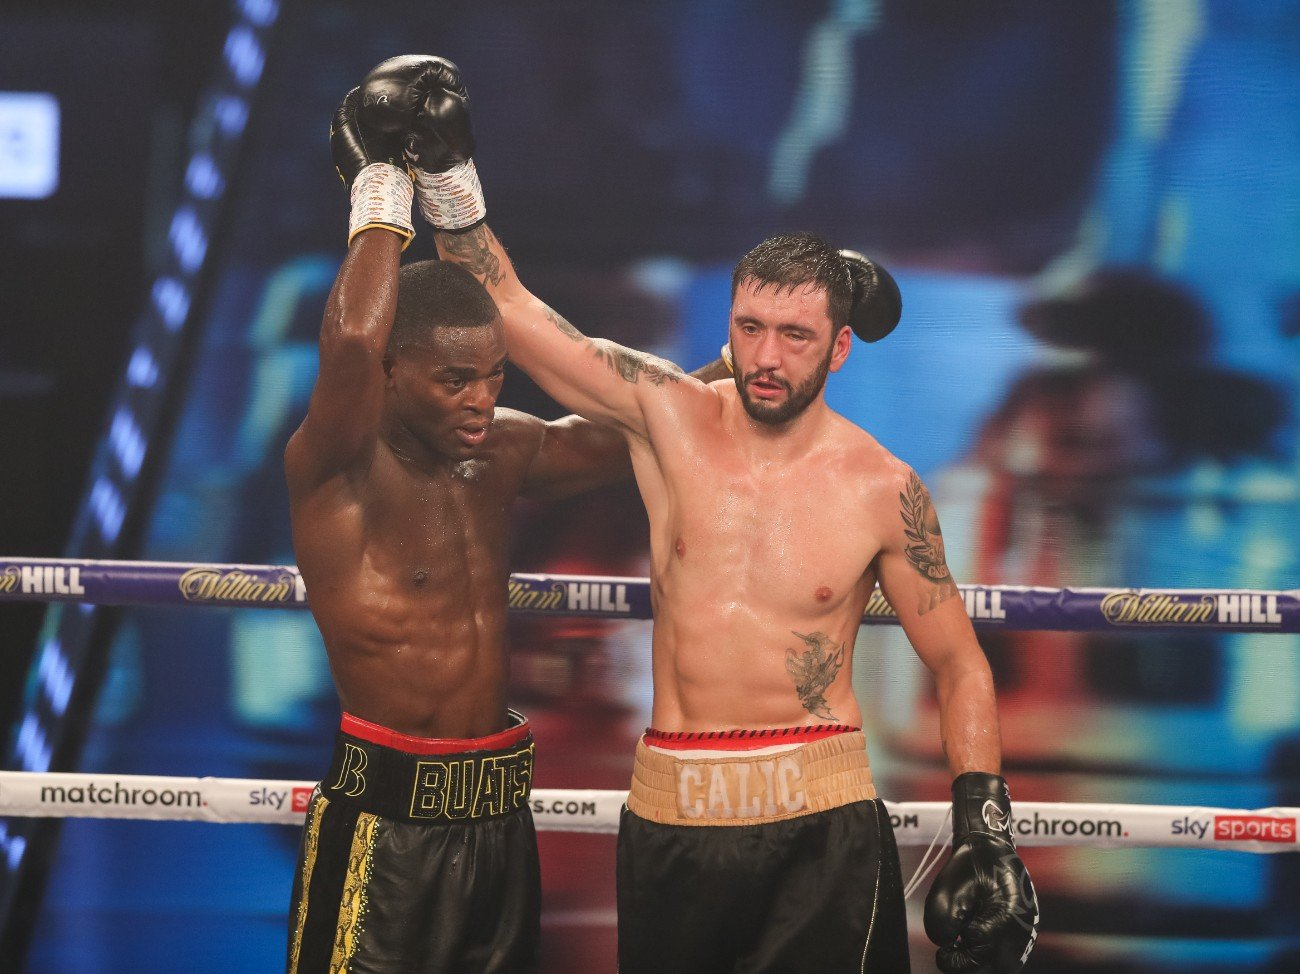 Alen Babic, Chantelle Cameron, Joshua Buatsi, Marko Calic, Niall Kennedy - Croydon's Joshua Buatsi came through the toughest test of his career yet as he stopped tough Croatian Marko Calic in seven brutal rounds to retain his WBA International Light-Heavyweight title in the main event at the Marshall Arena in Milton Keynes, live on Sky Sports in the UK and DAZN in the US.